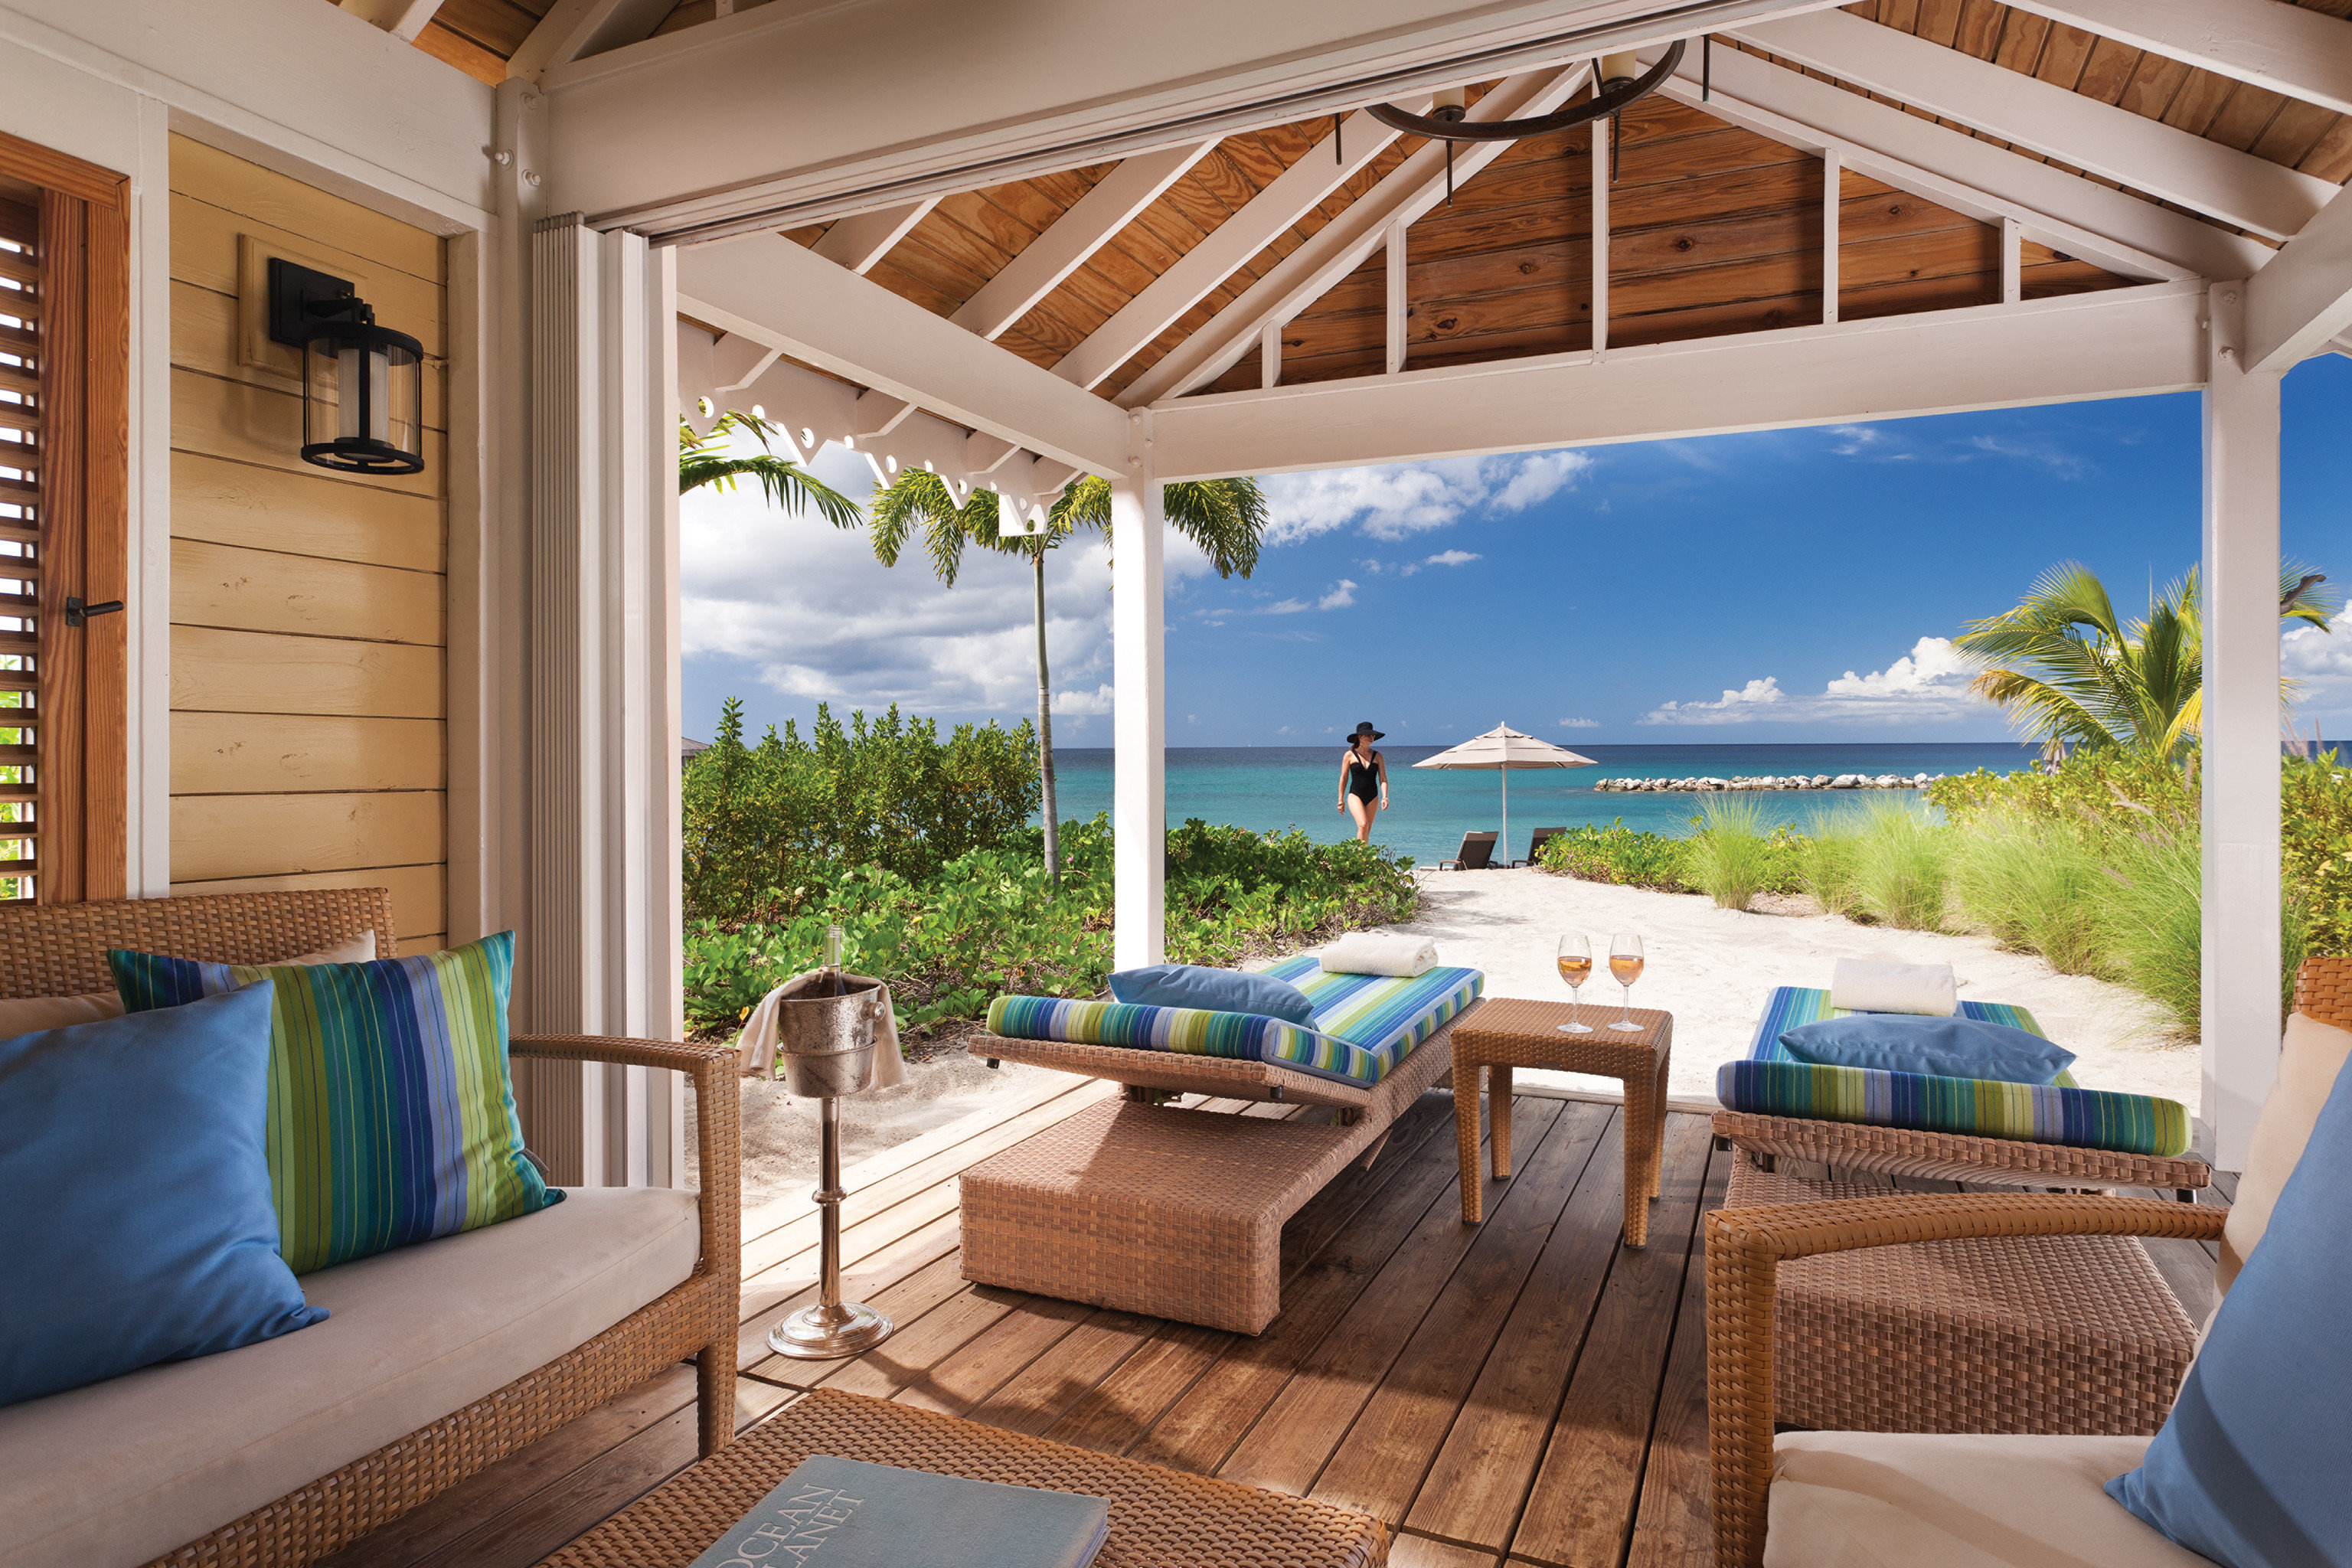 Hip Hotels Lounge Luxury Scenic views Trip Ideas property swimming pool Villa cottage home Resort backyard outdoor structure living room farmhouse porch overlooking